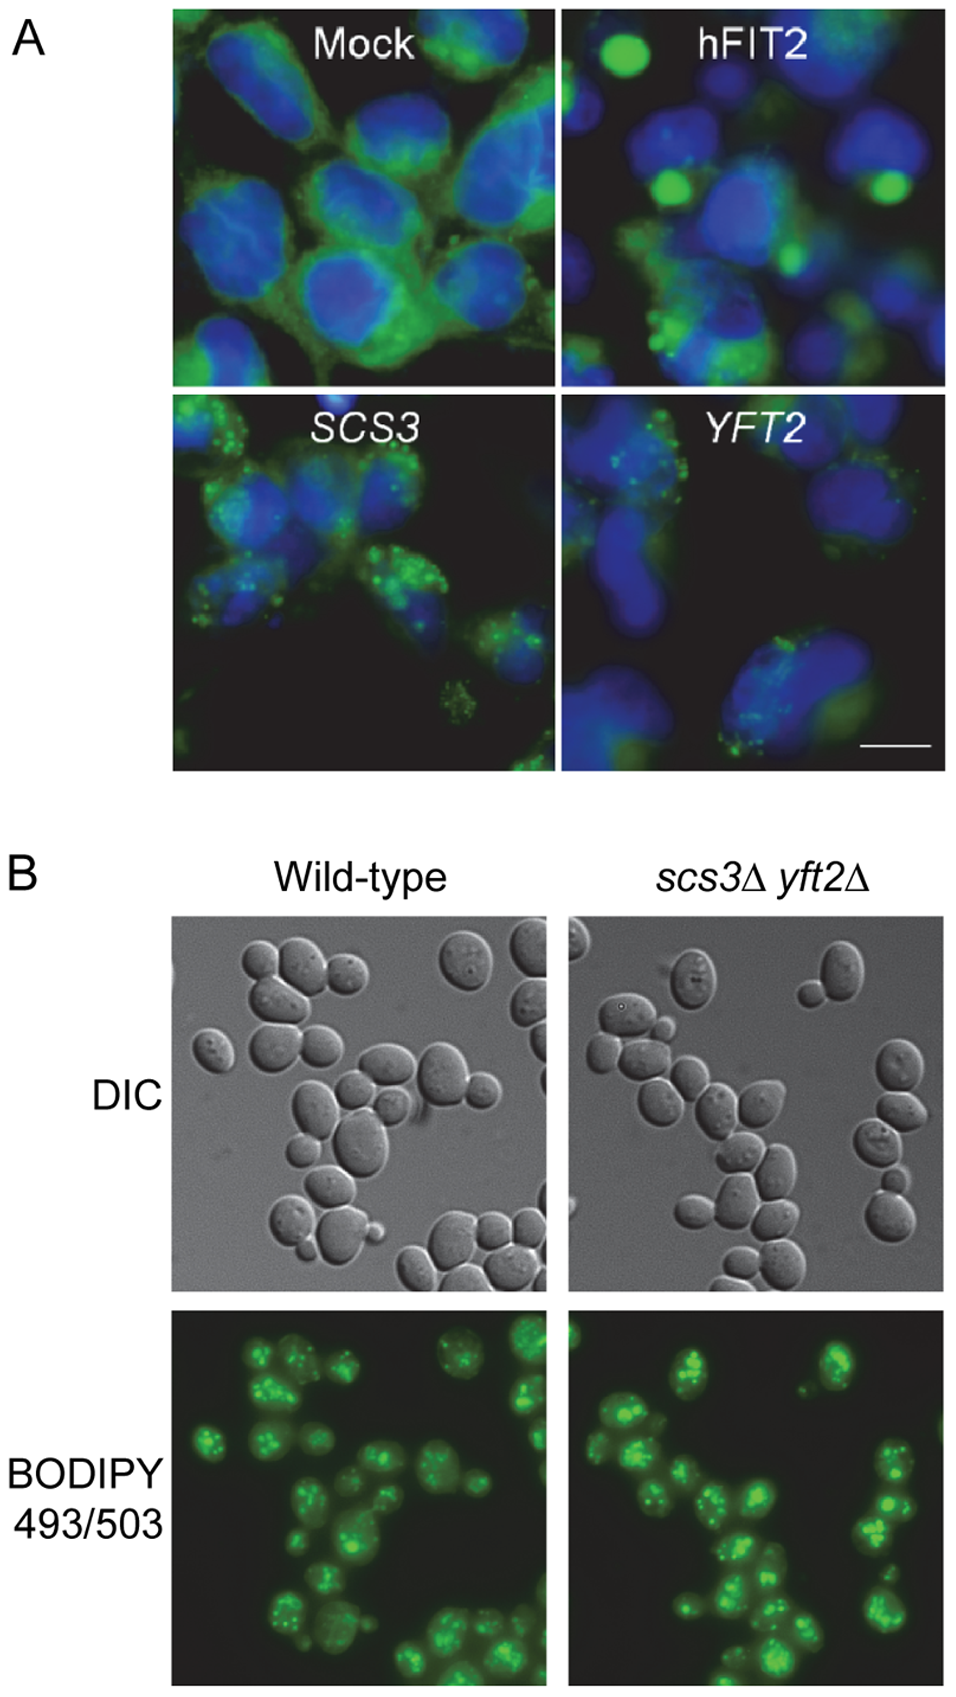 Lipid droplets in human cells expressing <i>SCS3</i> and <i>YFT2</i> and in yeast gene-deletion strains.